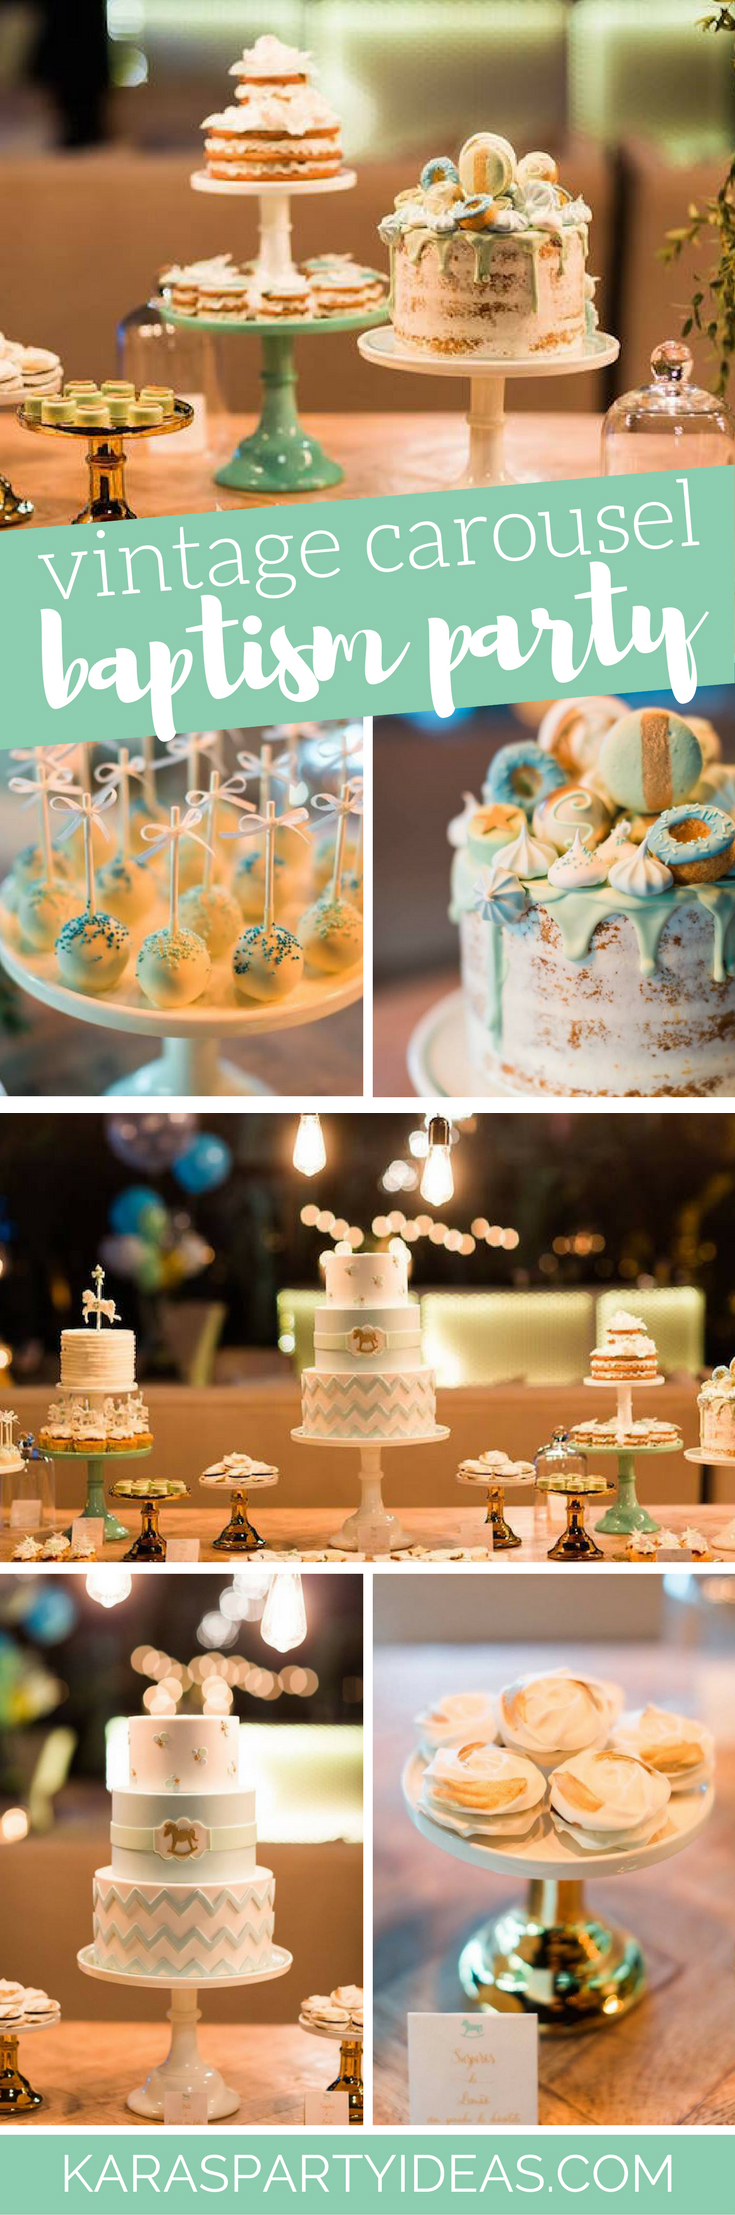 Vintage Carousel Baptism Party via Kara's Party Ideas - KarasPartyIdeas.com